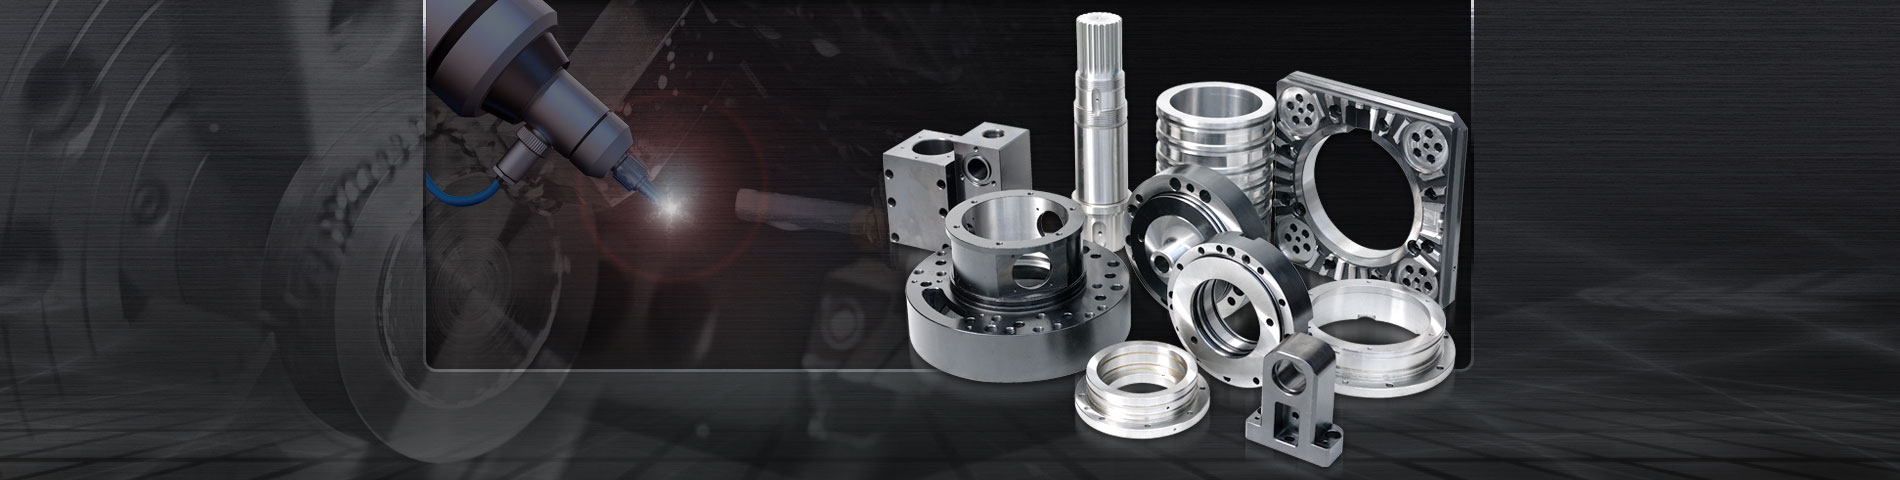 OEM Precision Machining Services